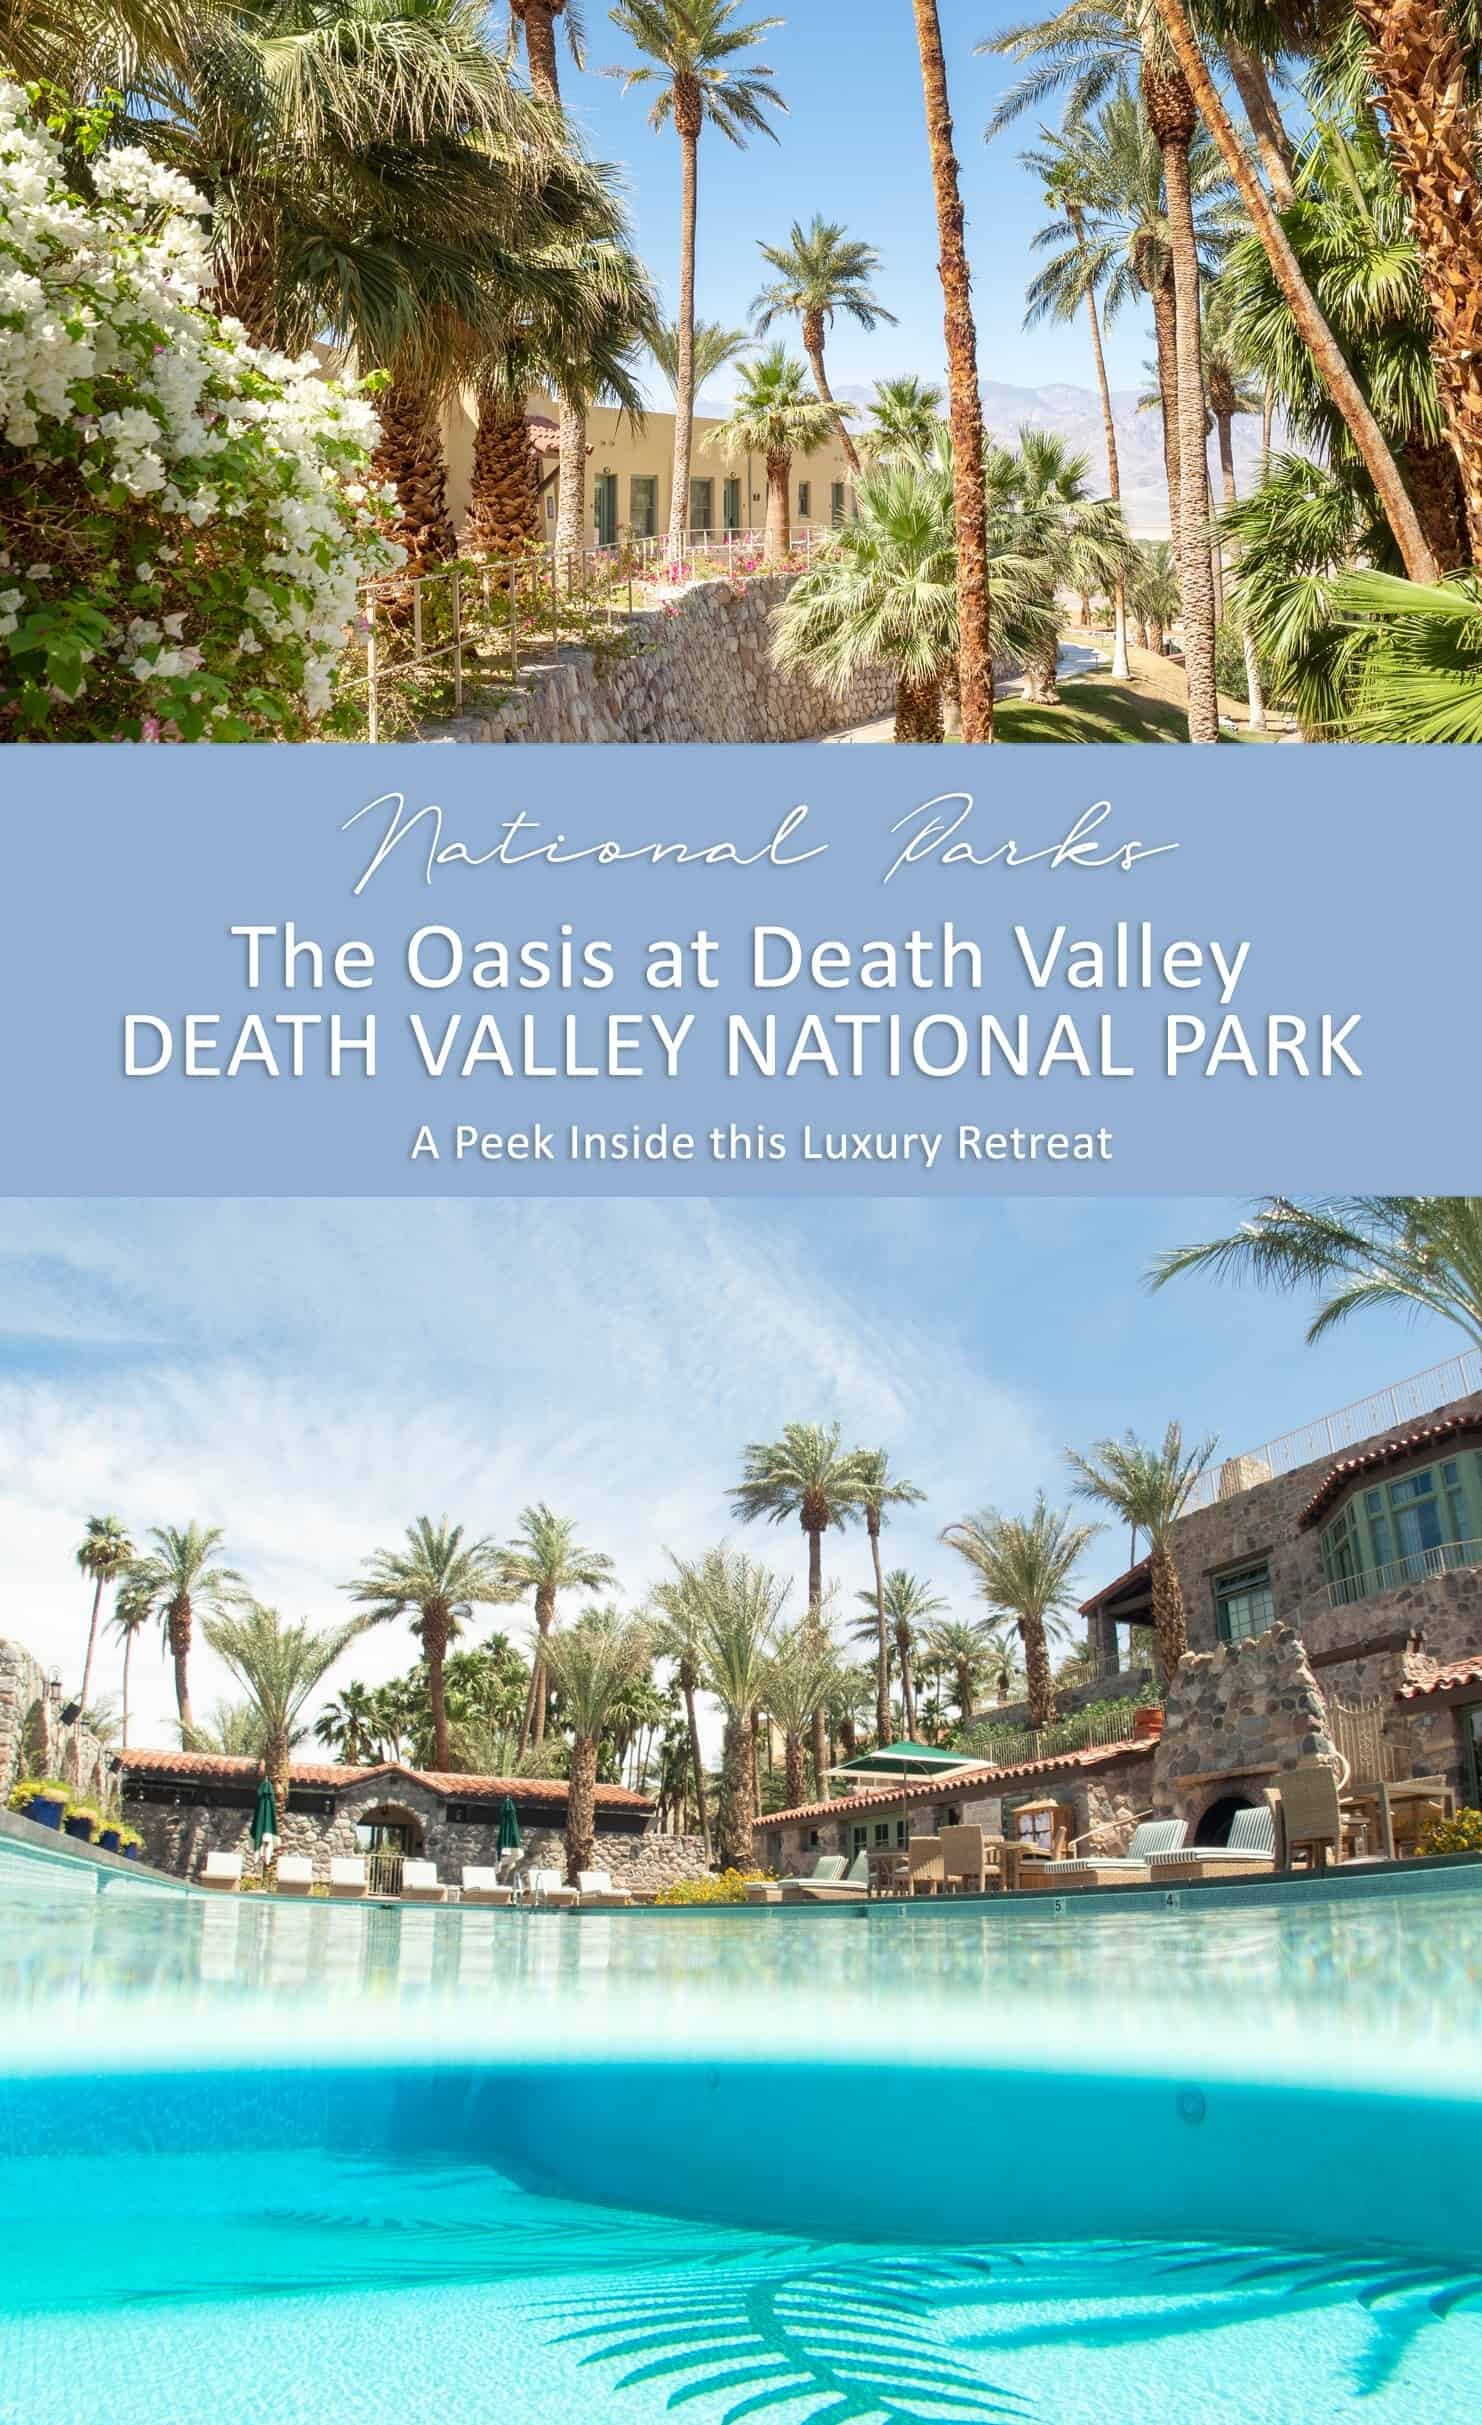 The Oasis at Death Valley - Where to stay in Death Valley National Park